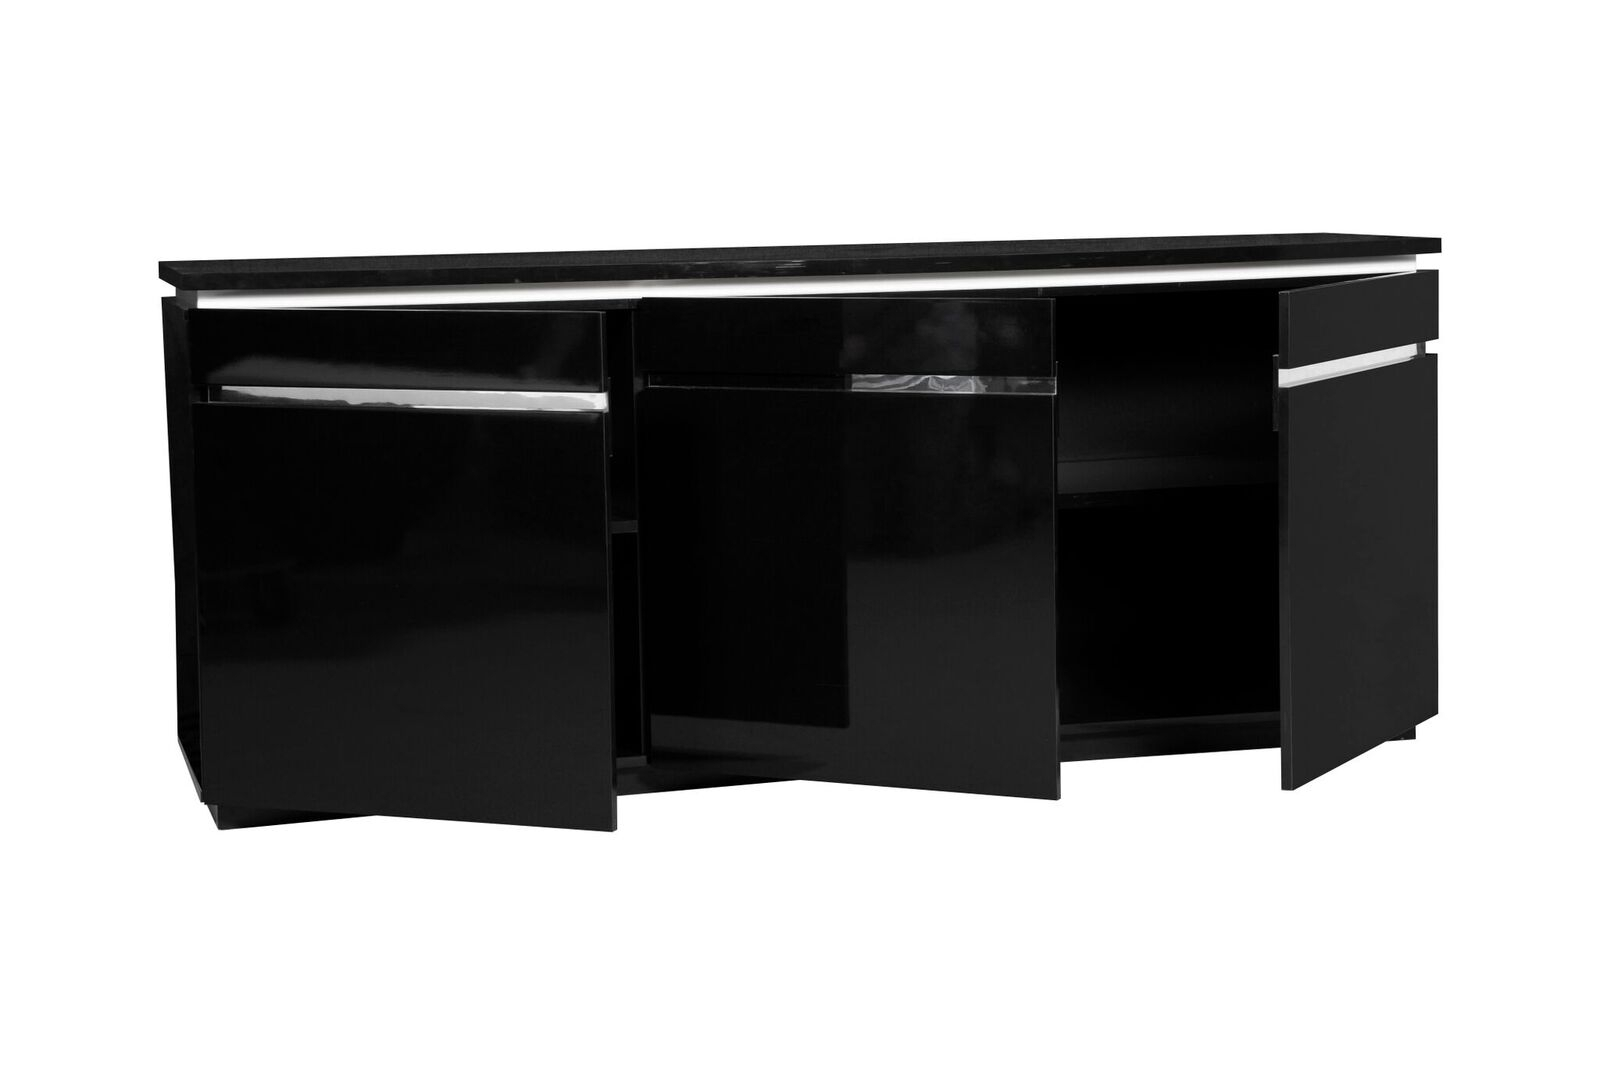 Logan Modern Black Sideboard High Gloss & Lights | Sideboards | Fads inside Logan Sideboards (Image 9 of 30)